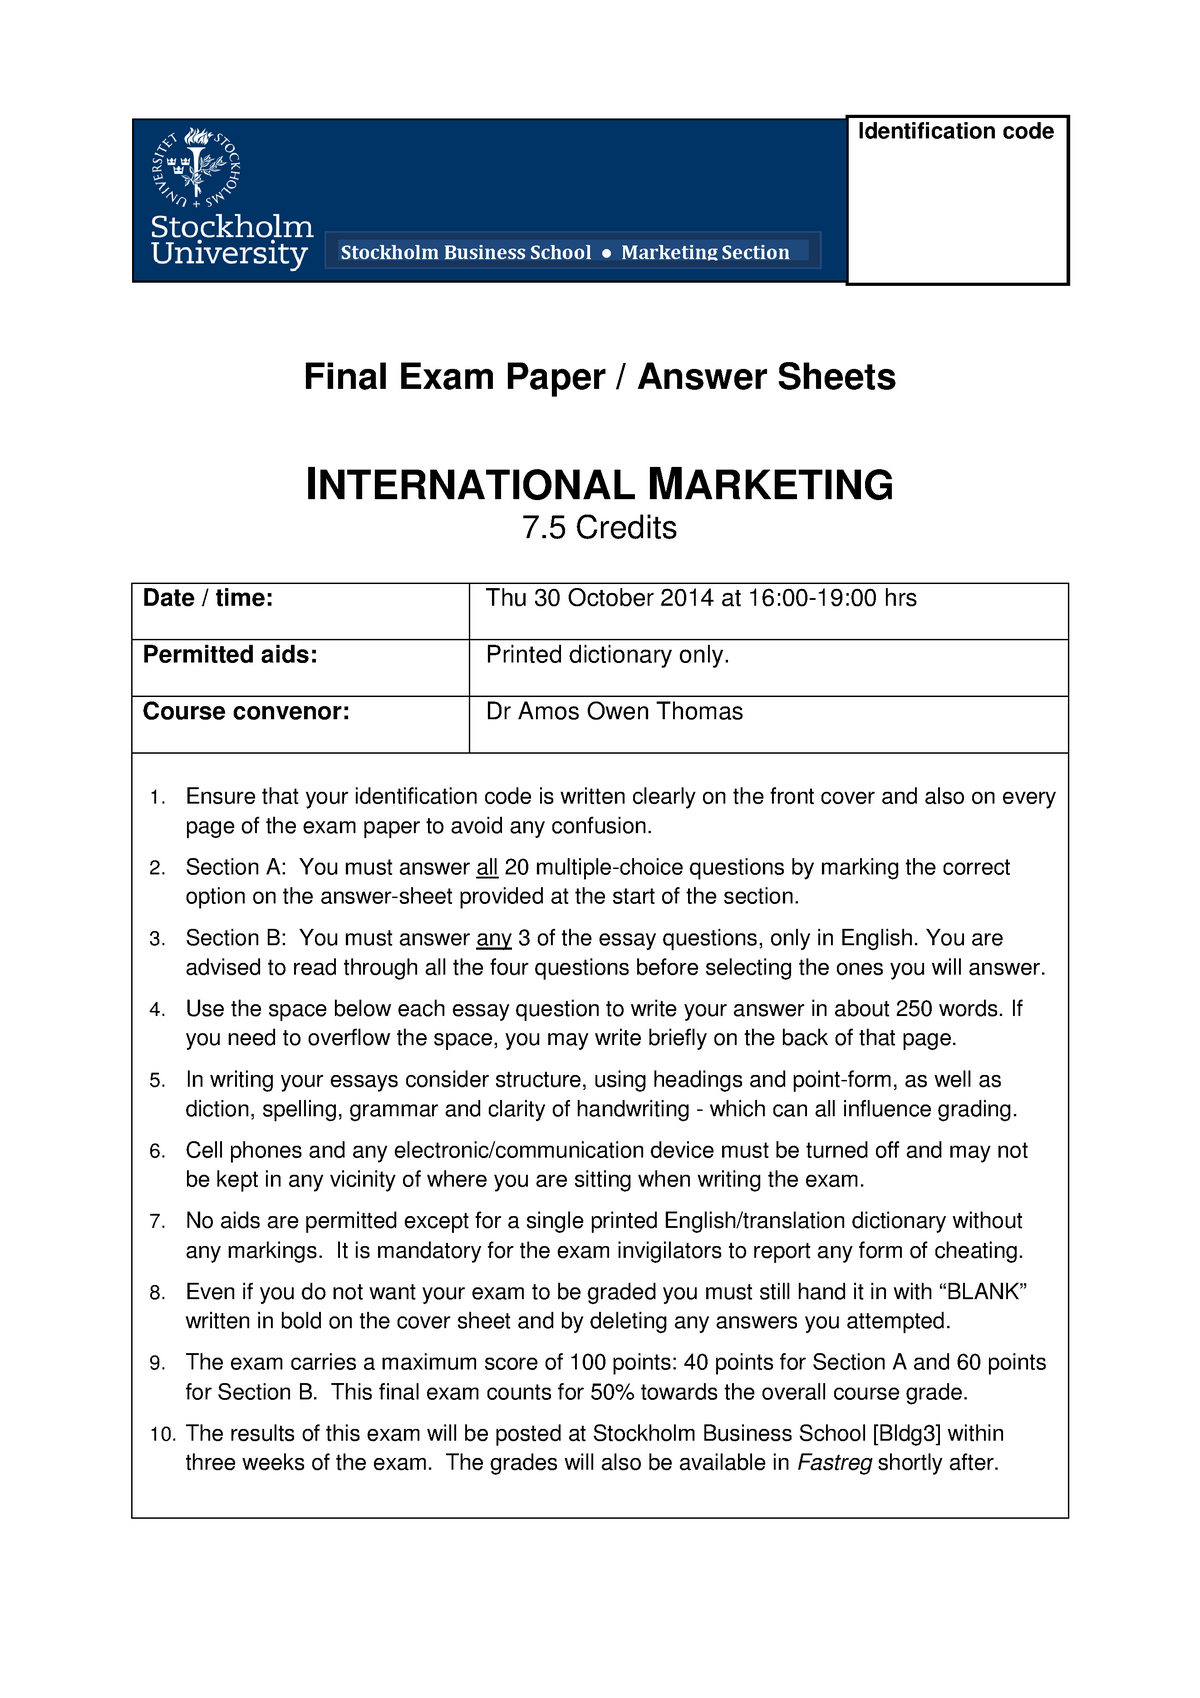 Final and Re-Sit Exam papers of International Marketing 2014